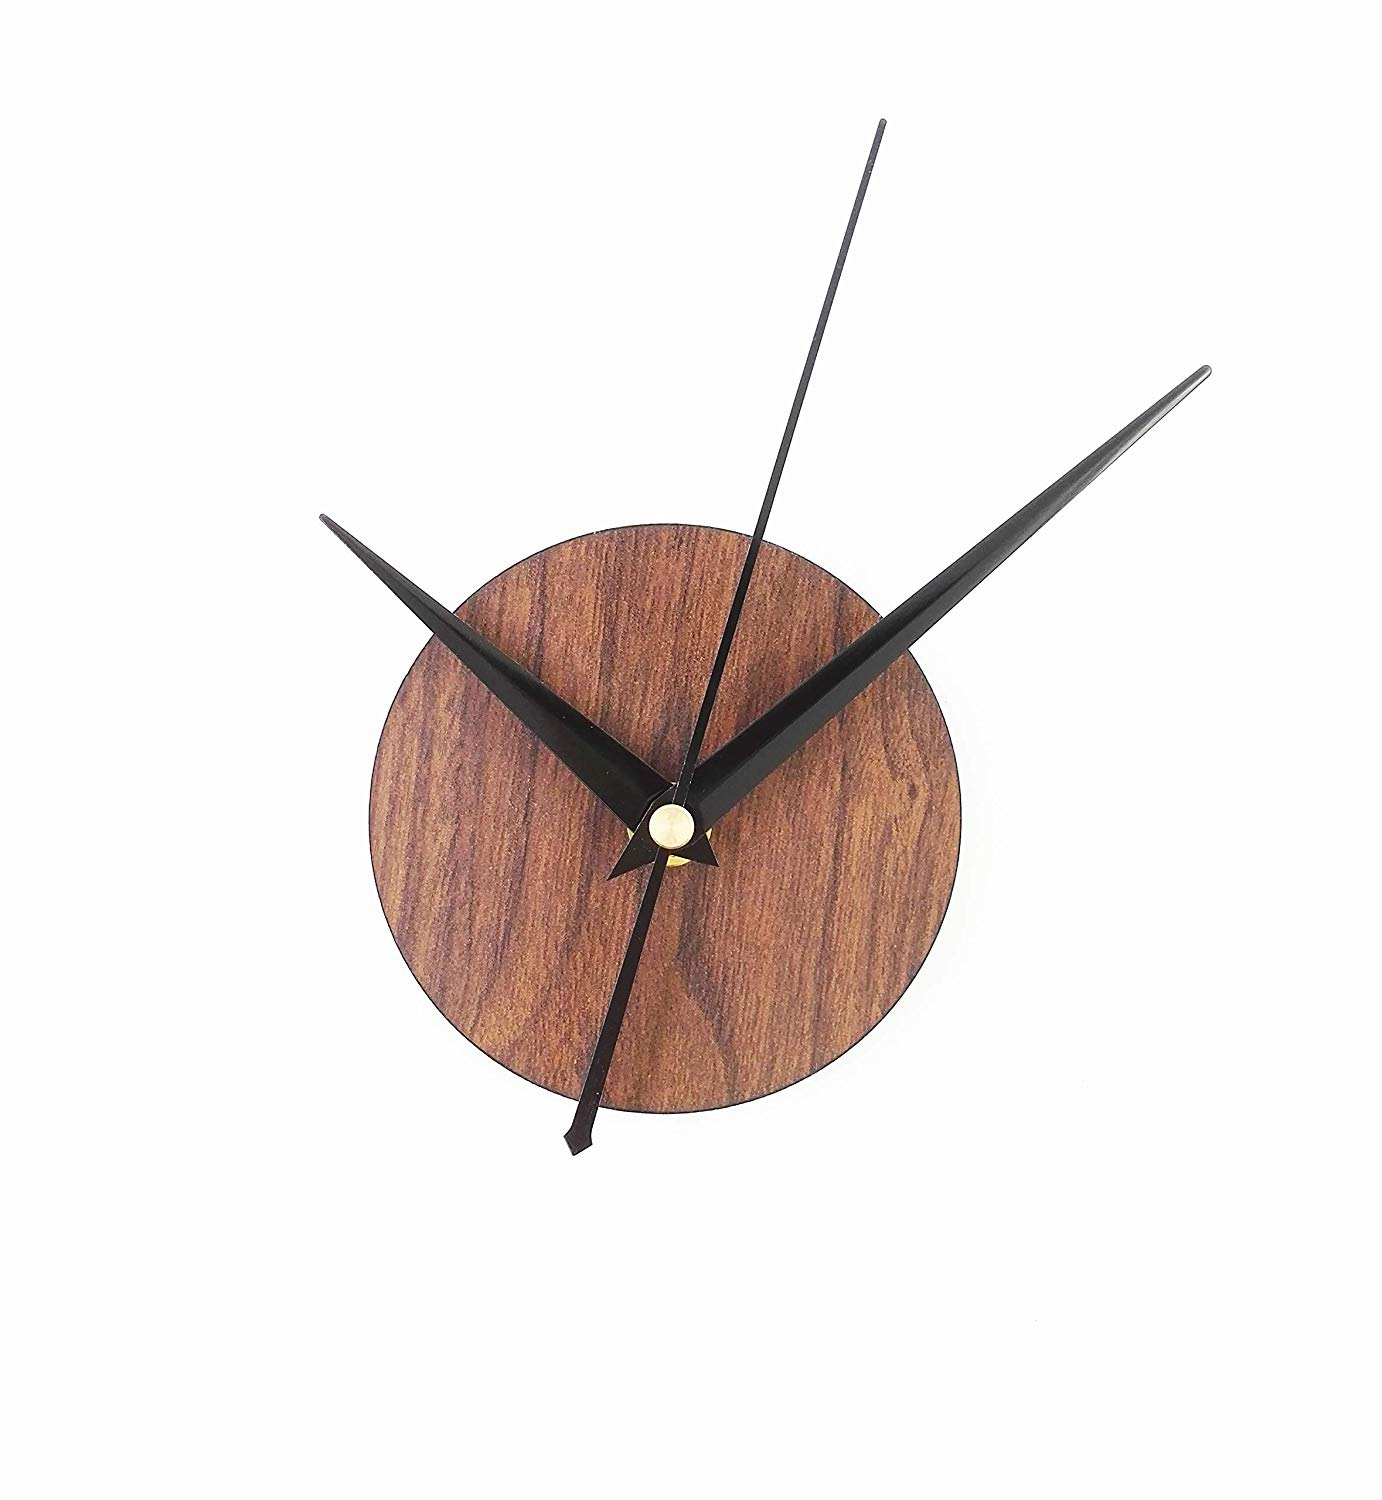 Reliable-E Wood Like Clock Face Power Movement DIY Wall Clock Kit for Home Decor (Brown)